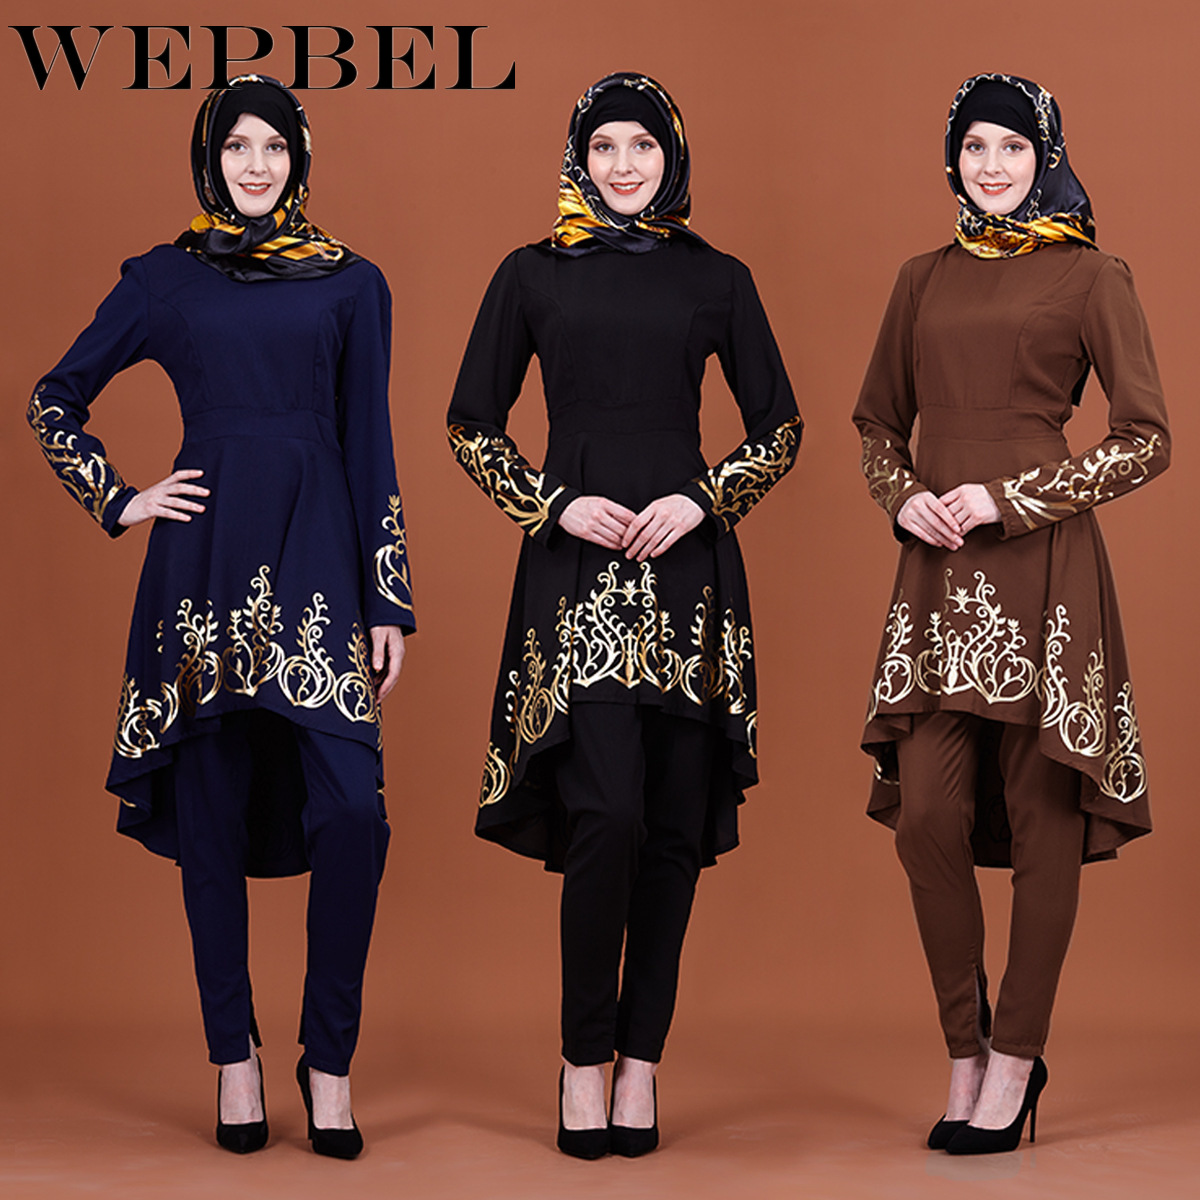 WEPBEL Muslim Gilded Printing Women's Clothing Middle East Solid Color Ramadan Islamic Abaya